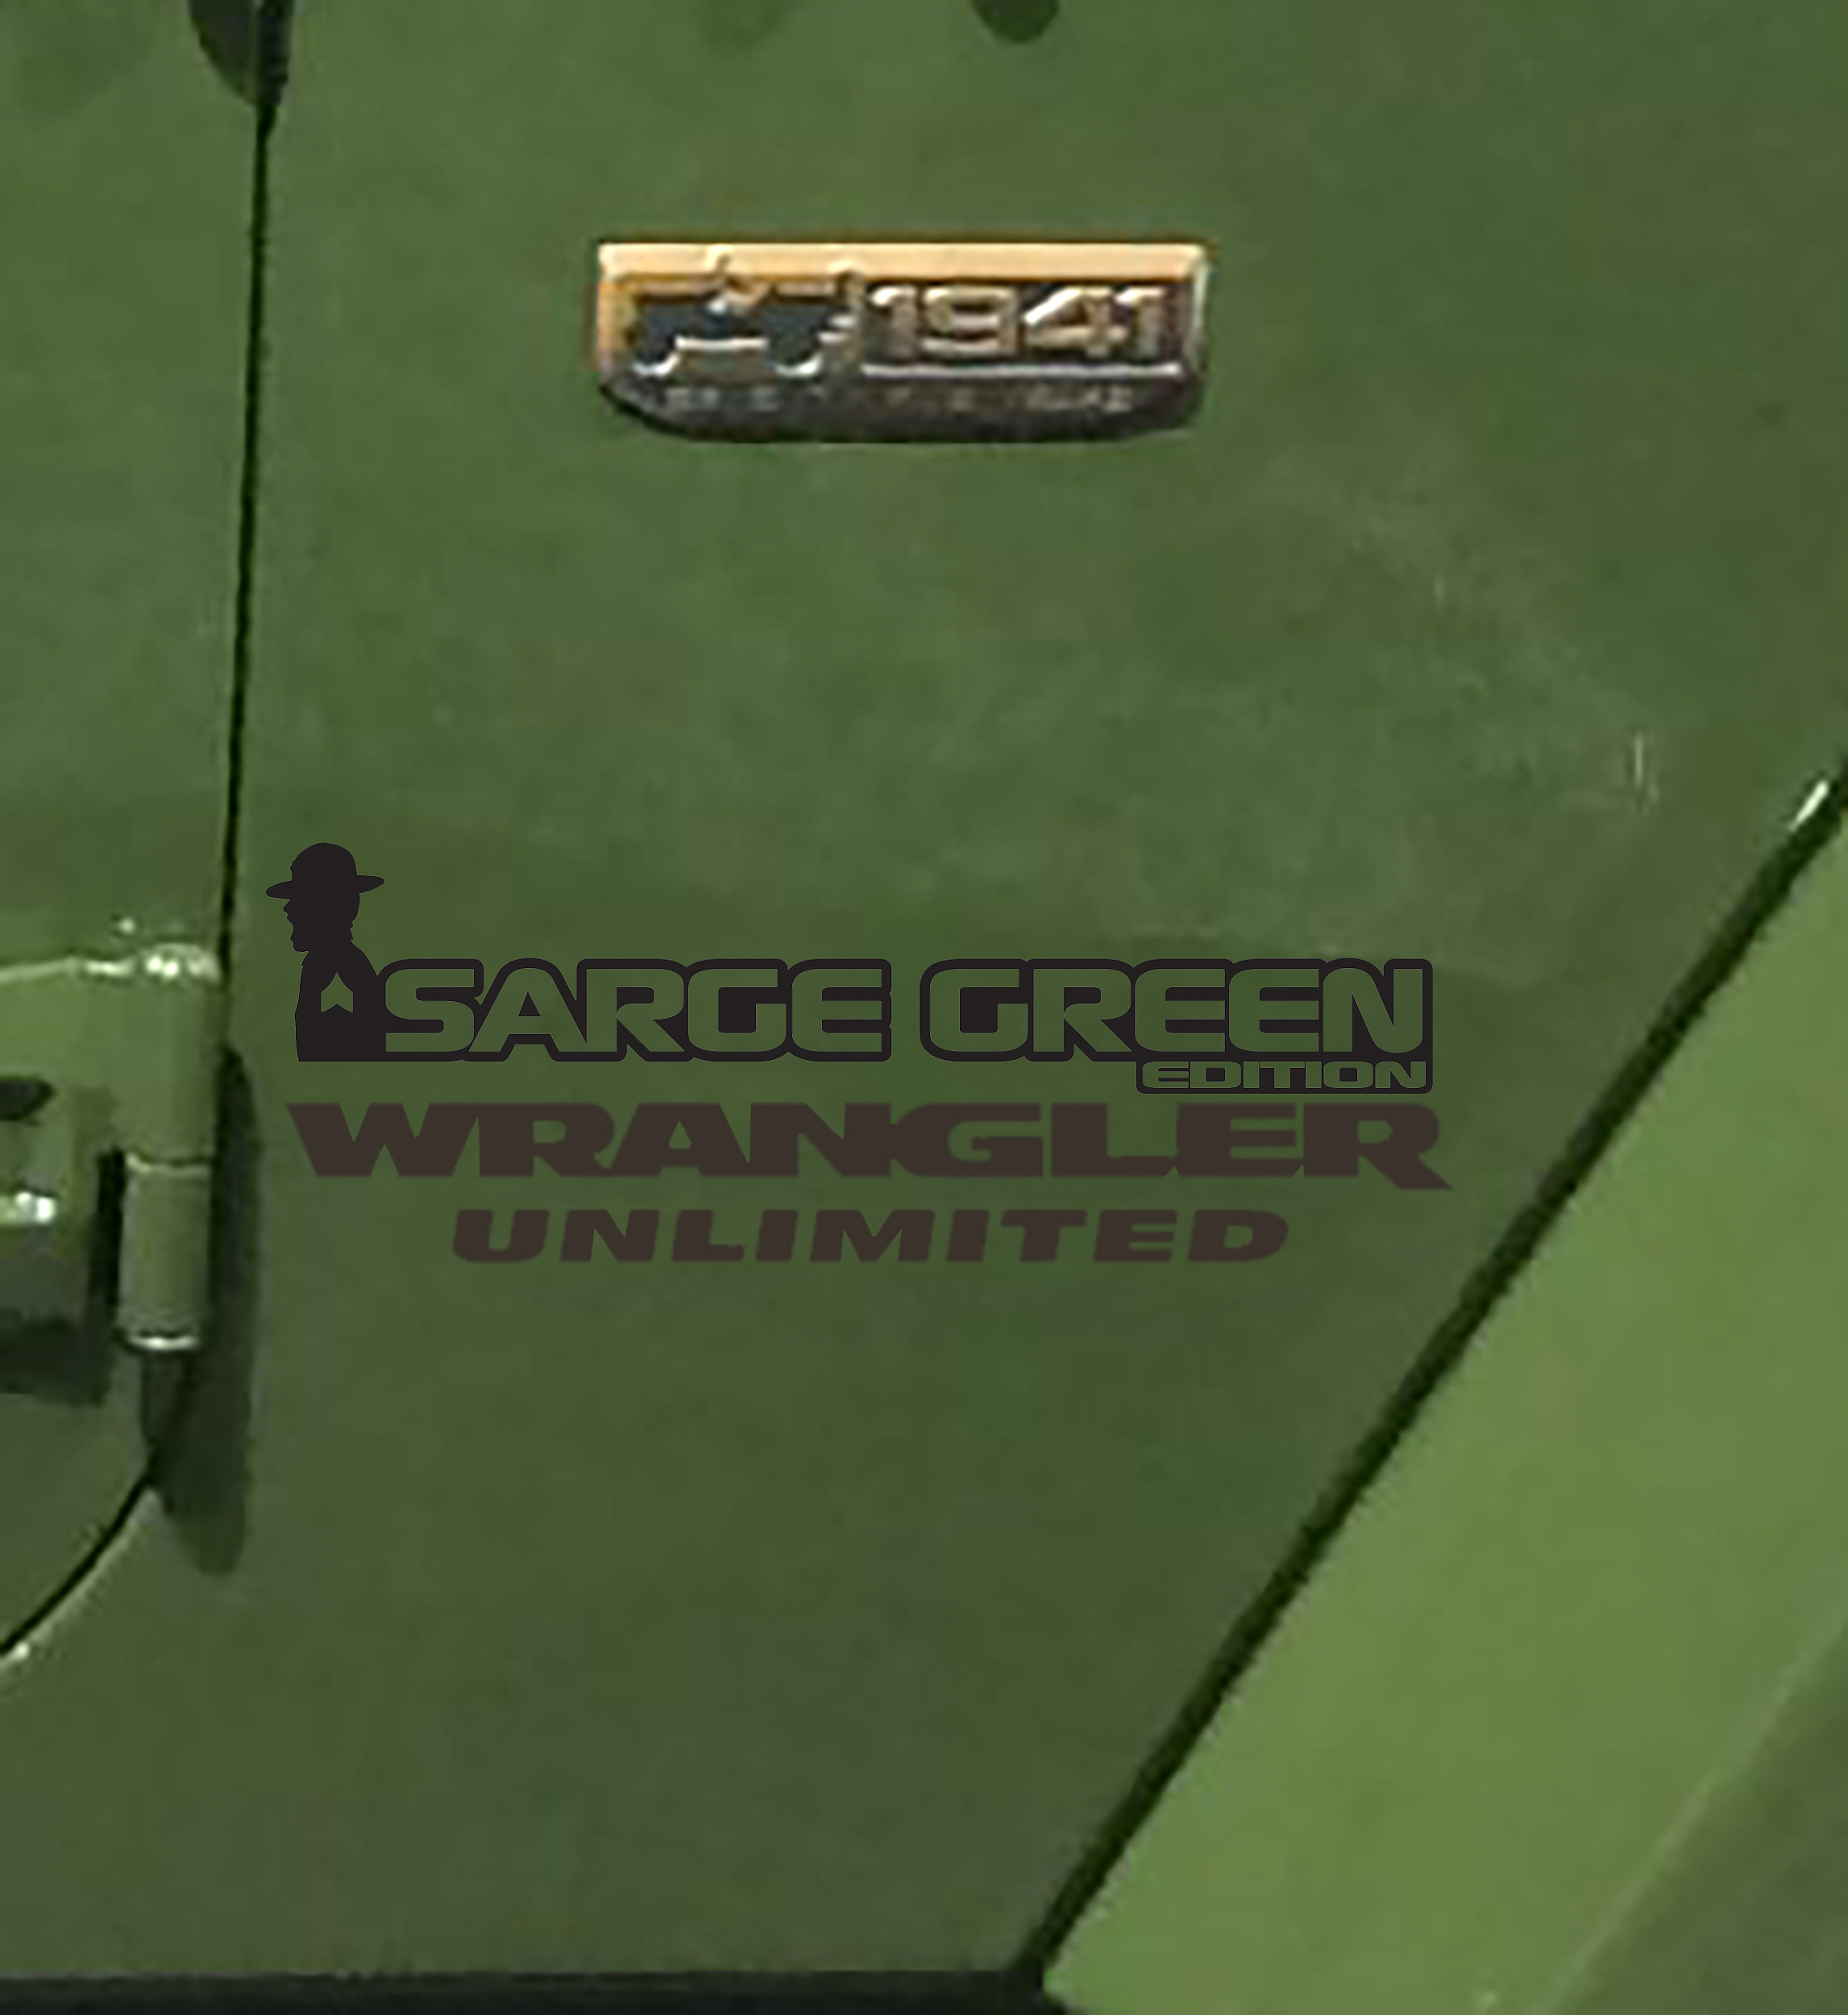 Fender Decals For Wrangler/Gladiator - JK/JL/JT Sarge Green Edition Decal (Pair)